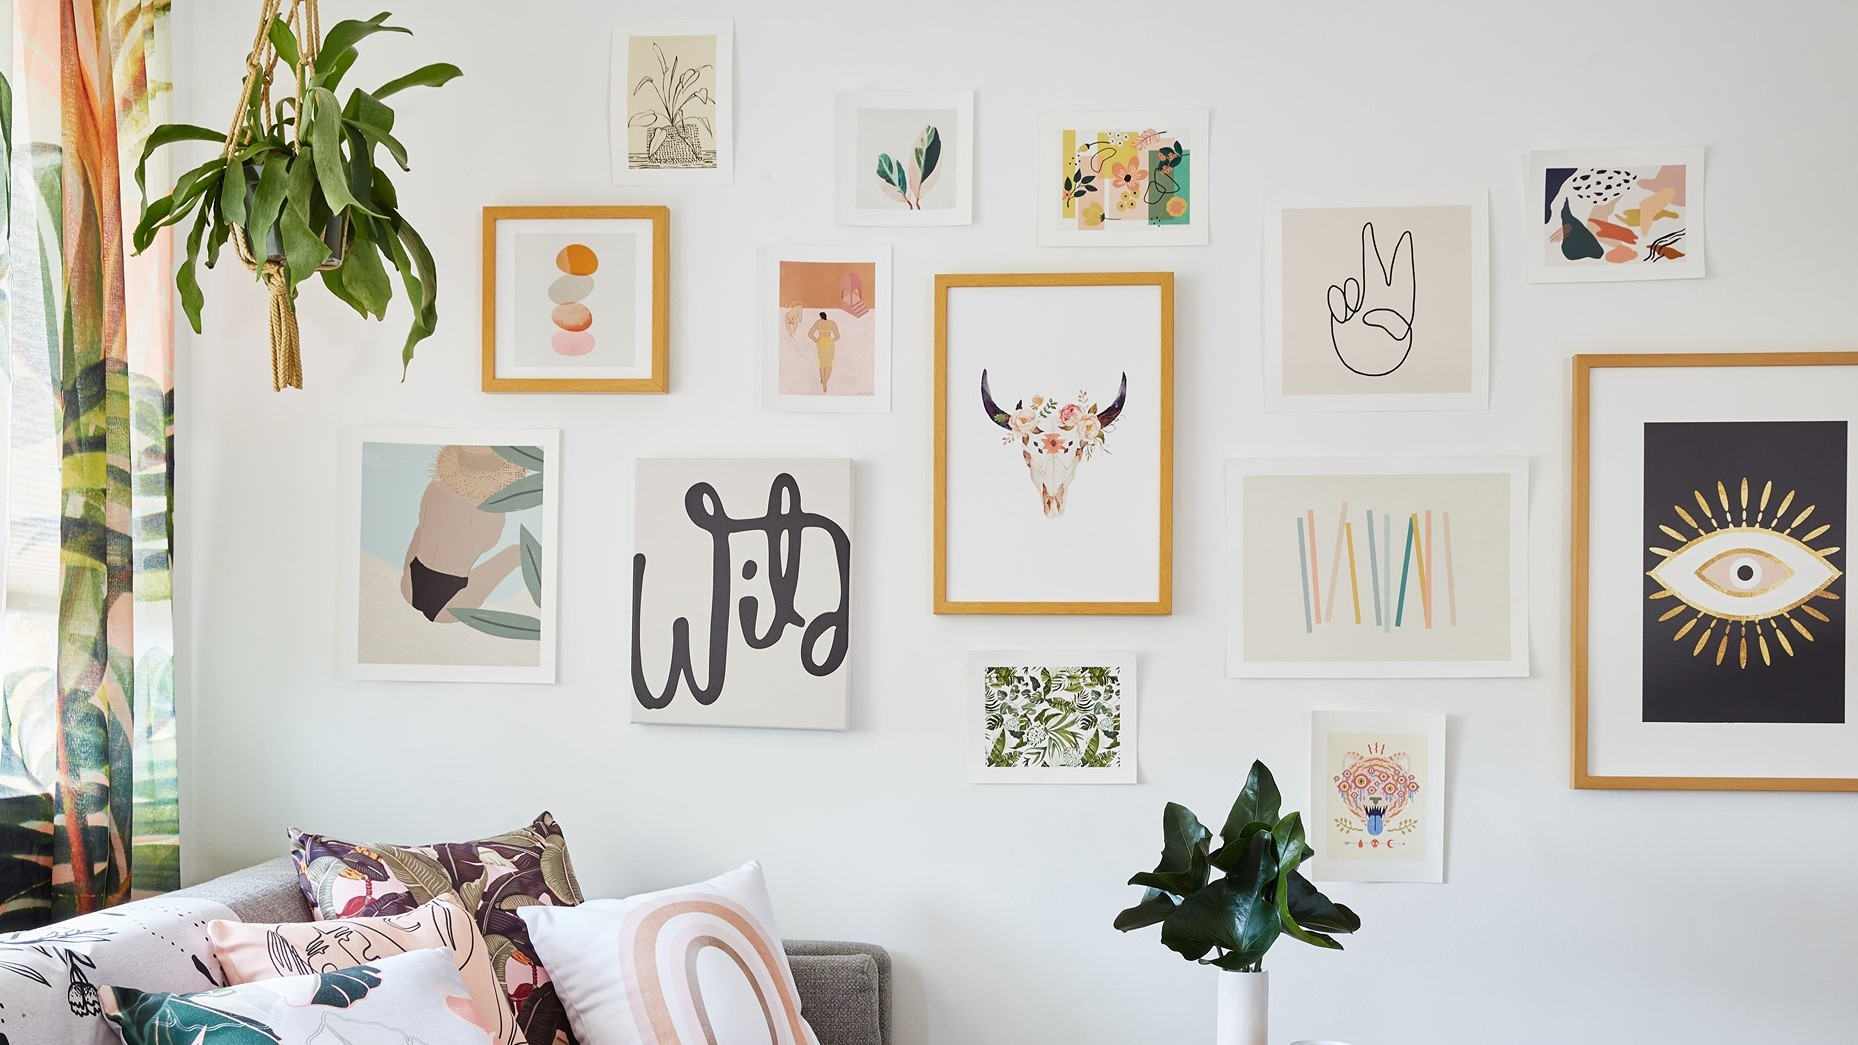 Society6's Epic Wall Art Sale Is Chock Full of Chic Dorm Décor Staples